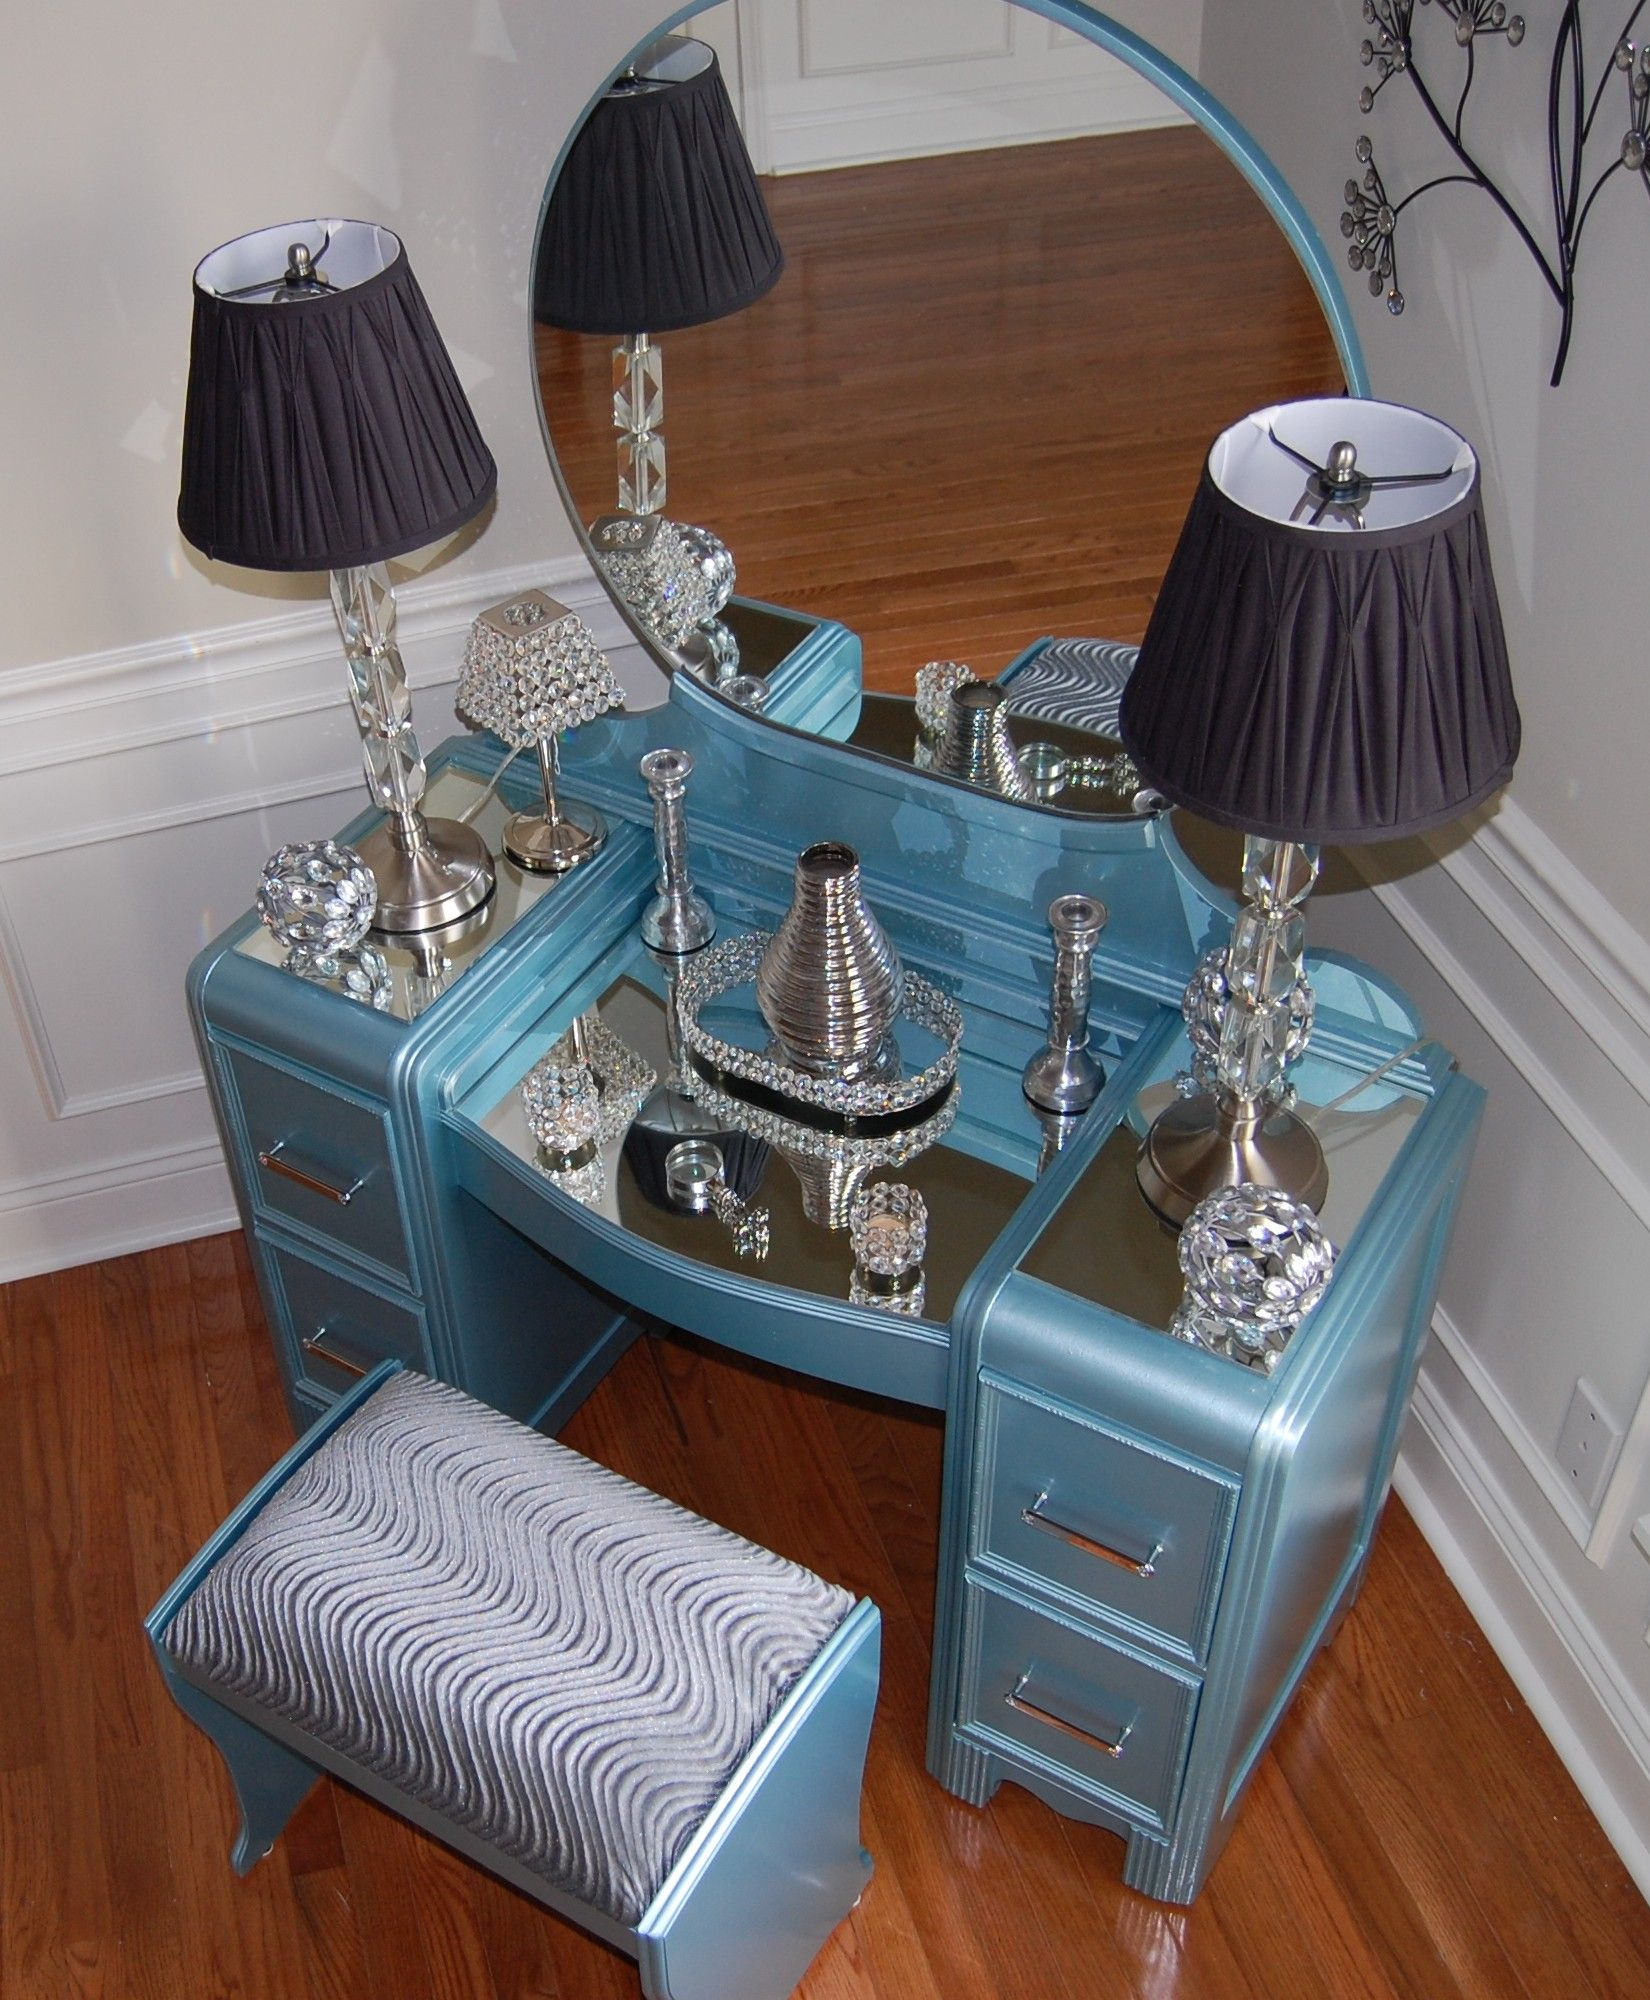 Weird Furniture For Sale: Vanity Waterfall Vintage Rebuilt And Restyled, 15 Minutes